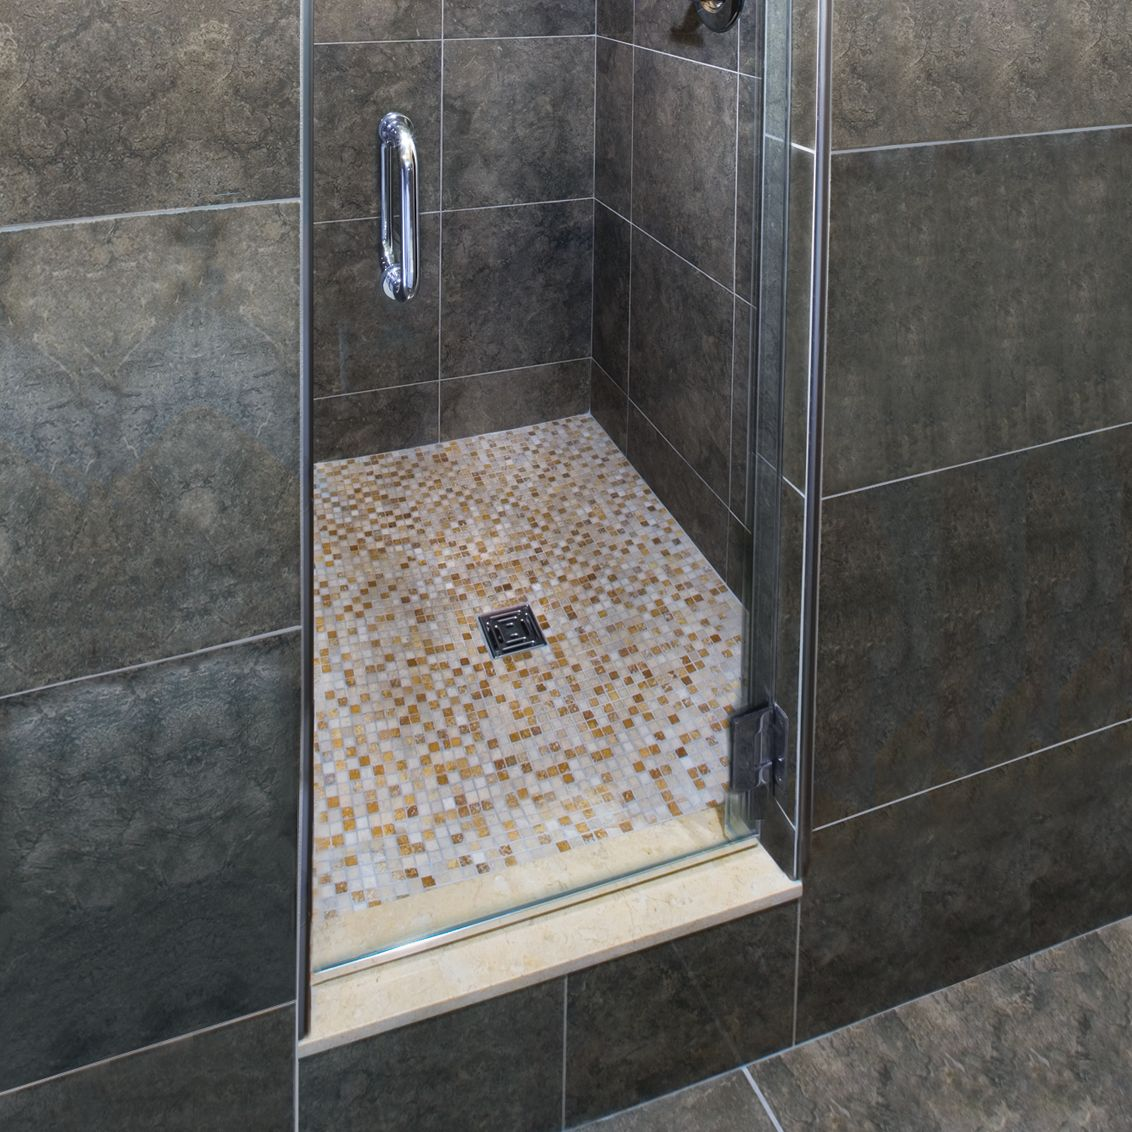 Essential water management in tiled showers Tile a shower